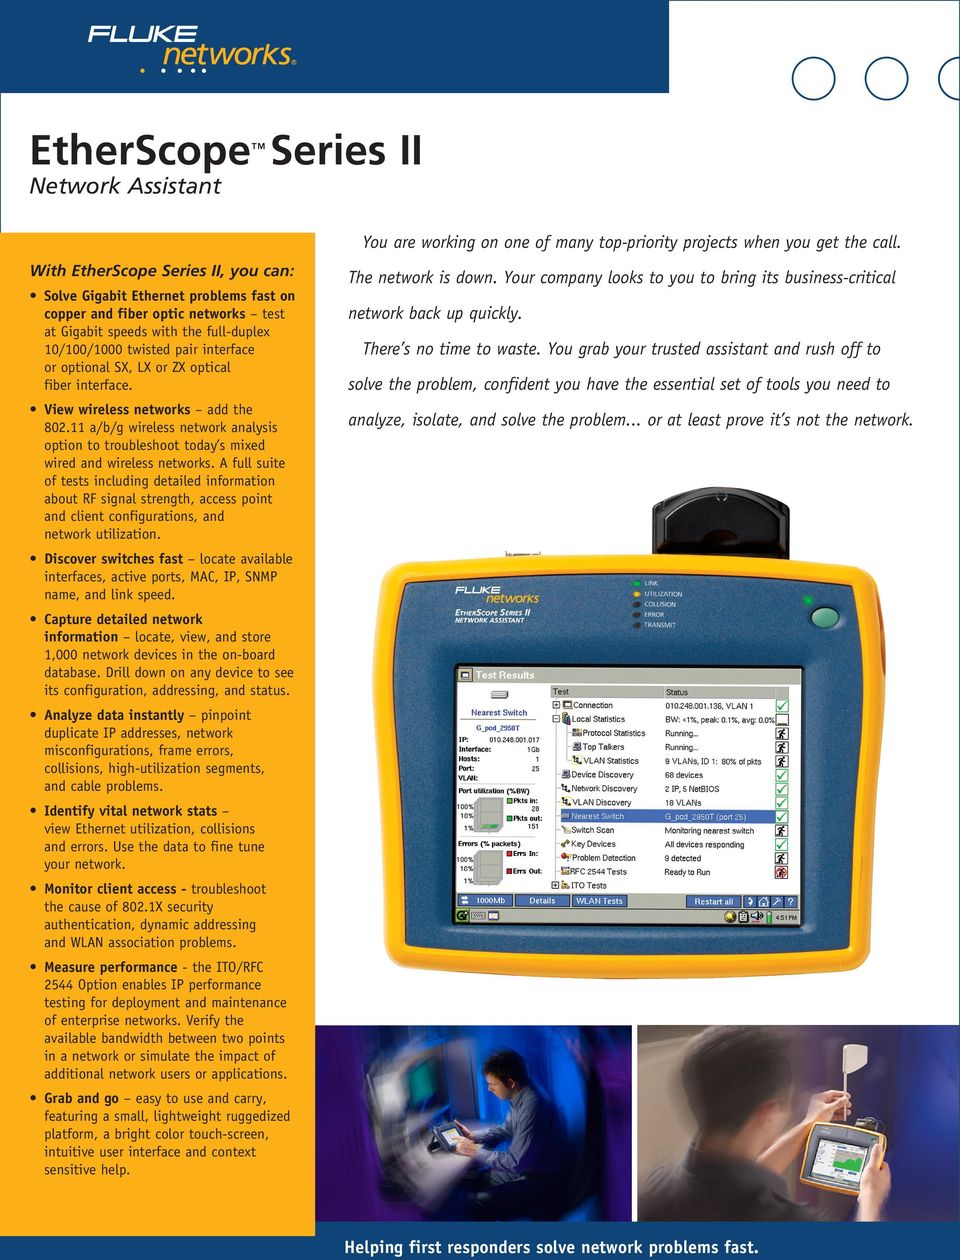 SX, LX or ZX optical fiber interface. View wireless networks add the 802.11  a